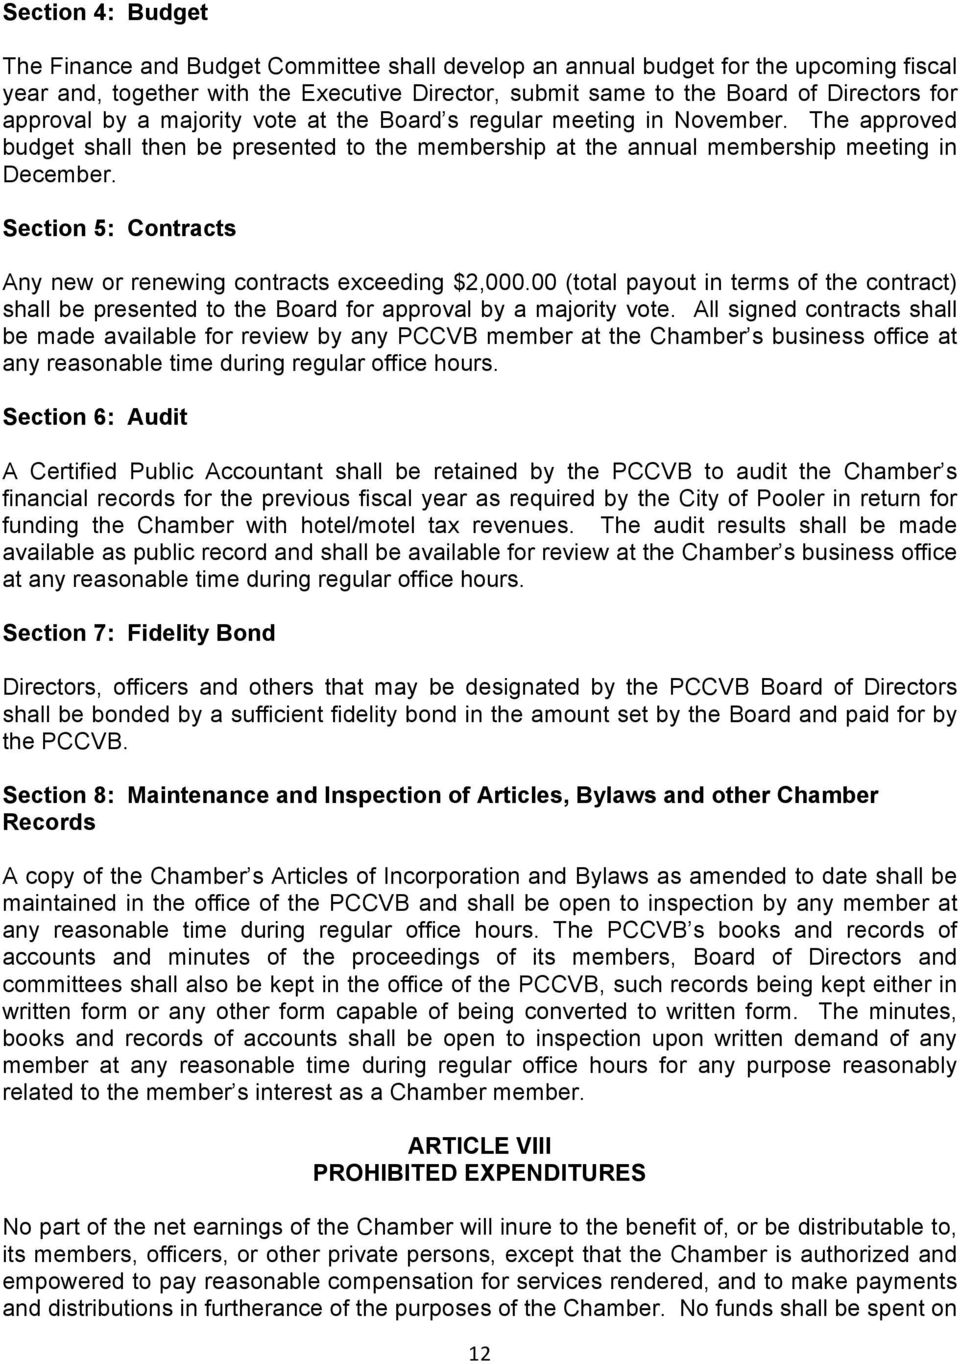 Section 5: Contracts Any new or renewing contracts exceeding $2,000.00 (total payout in terms of the contract) shall be presented to the Board for approval by a majority vote.